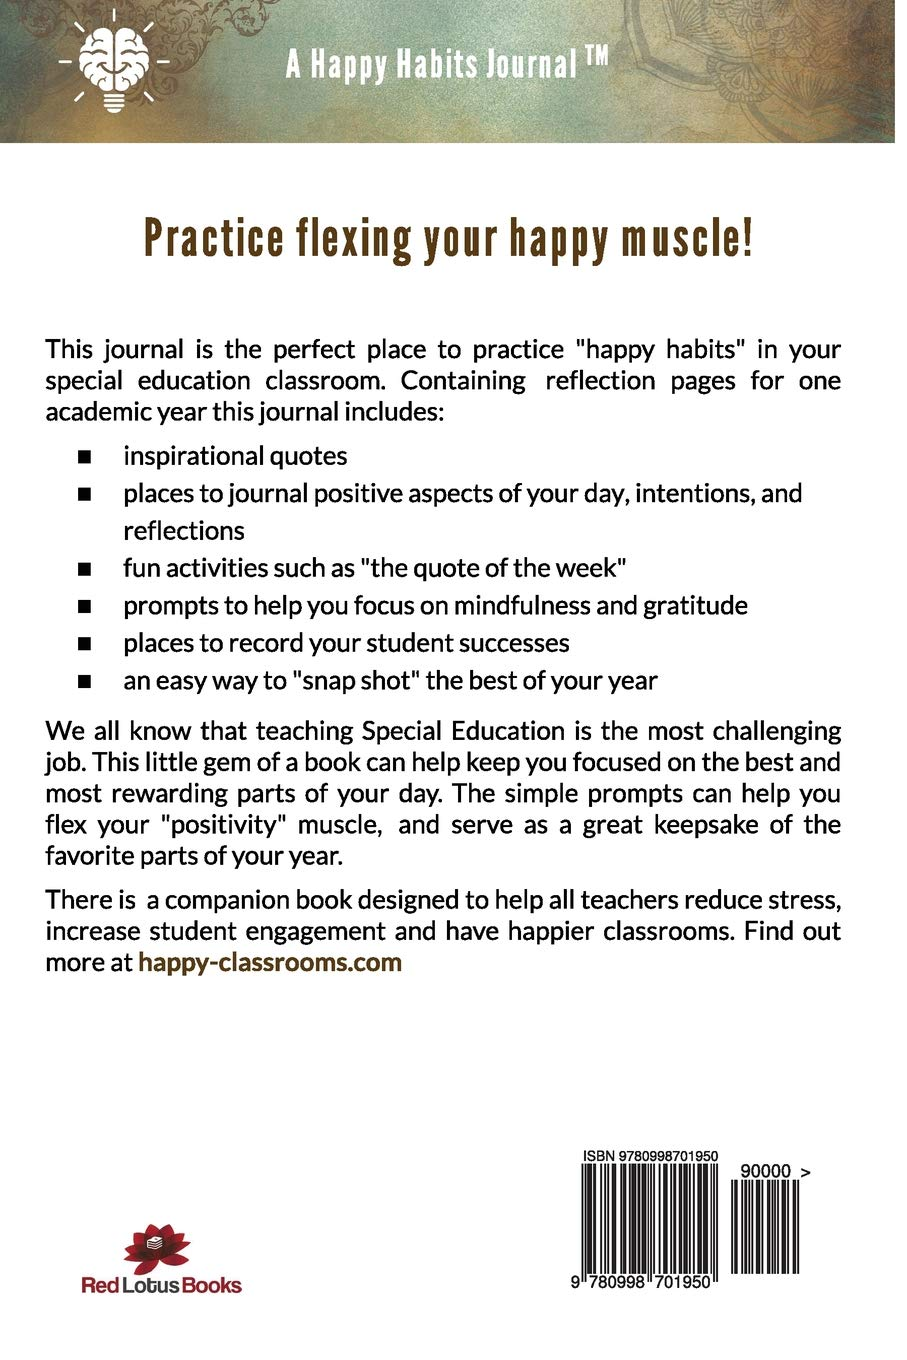 Positive Mindset Journal for Special Education Teachers: A